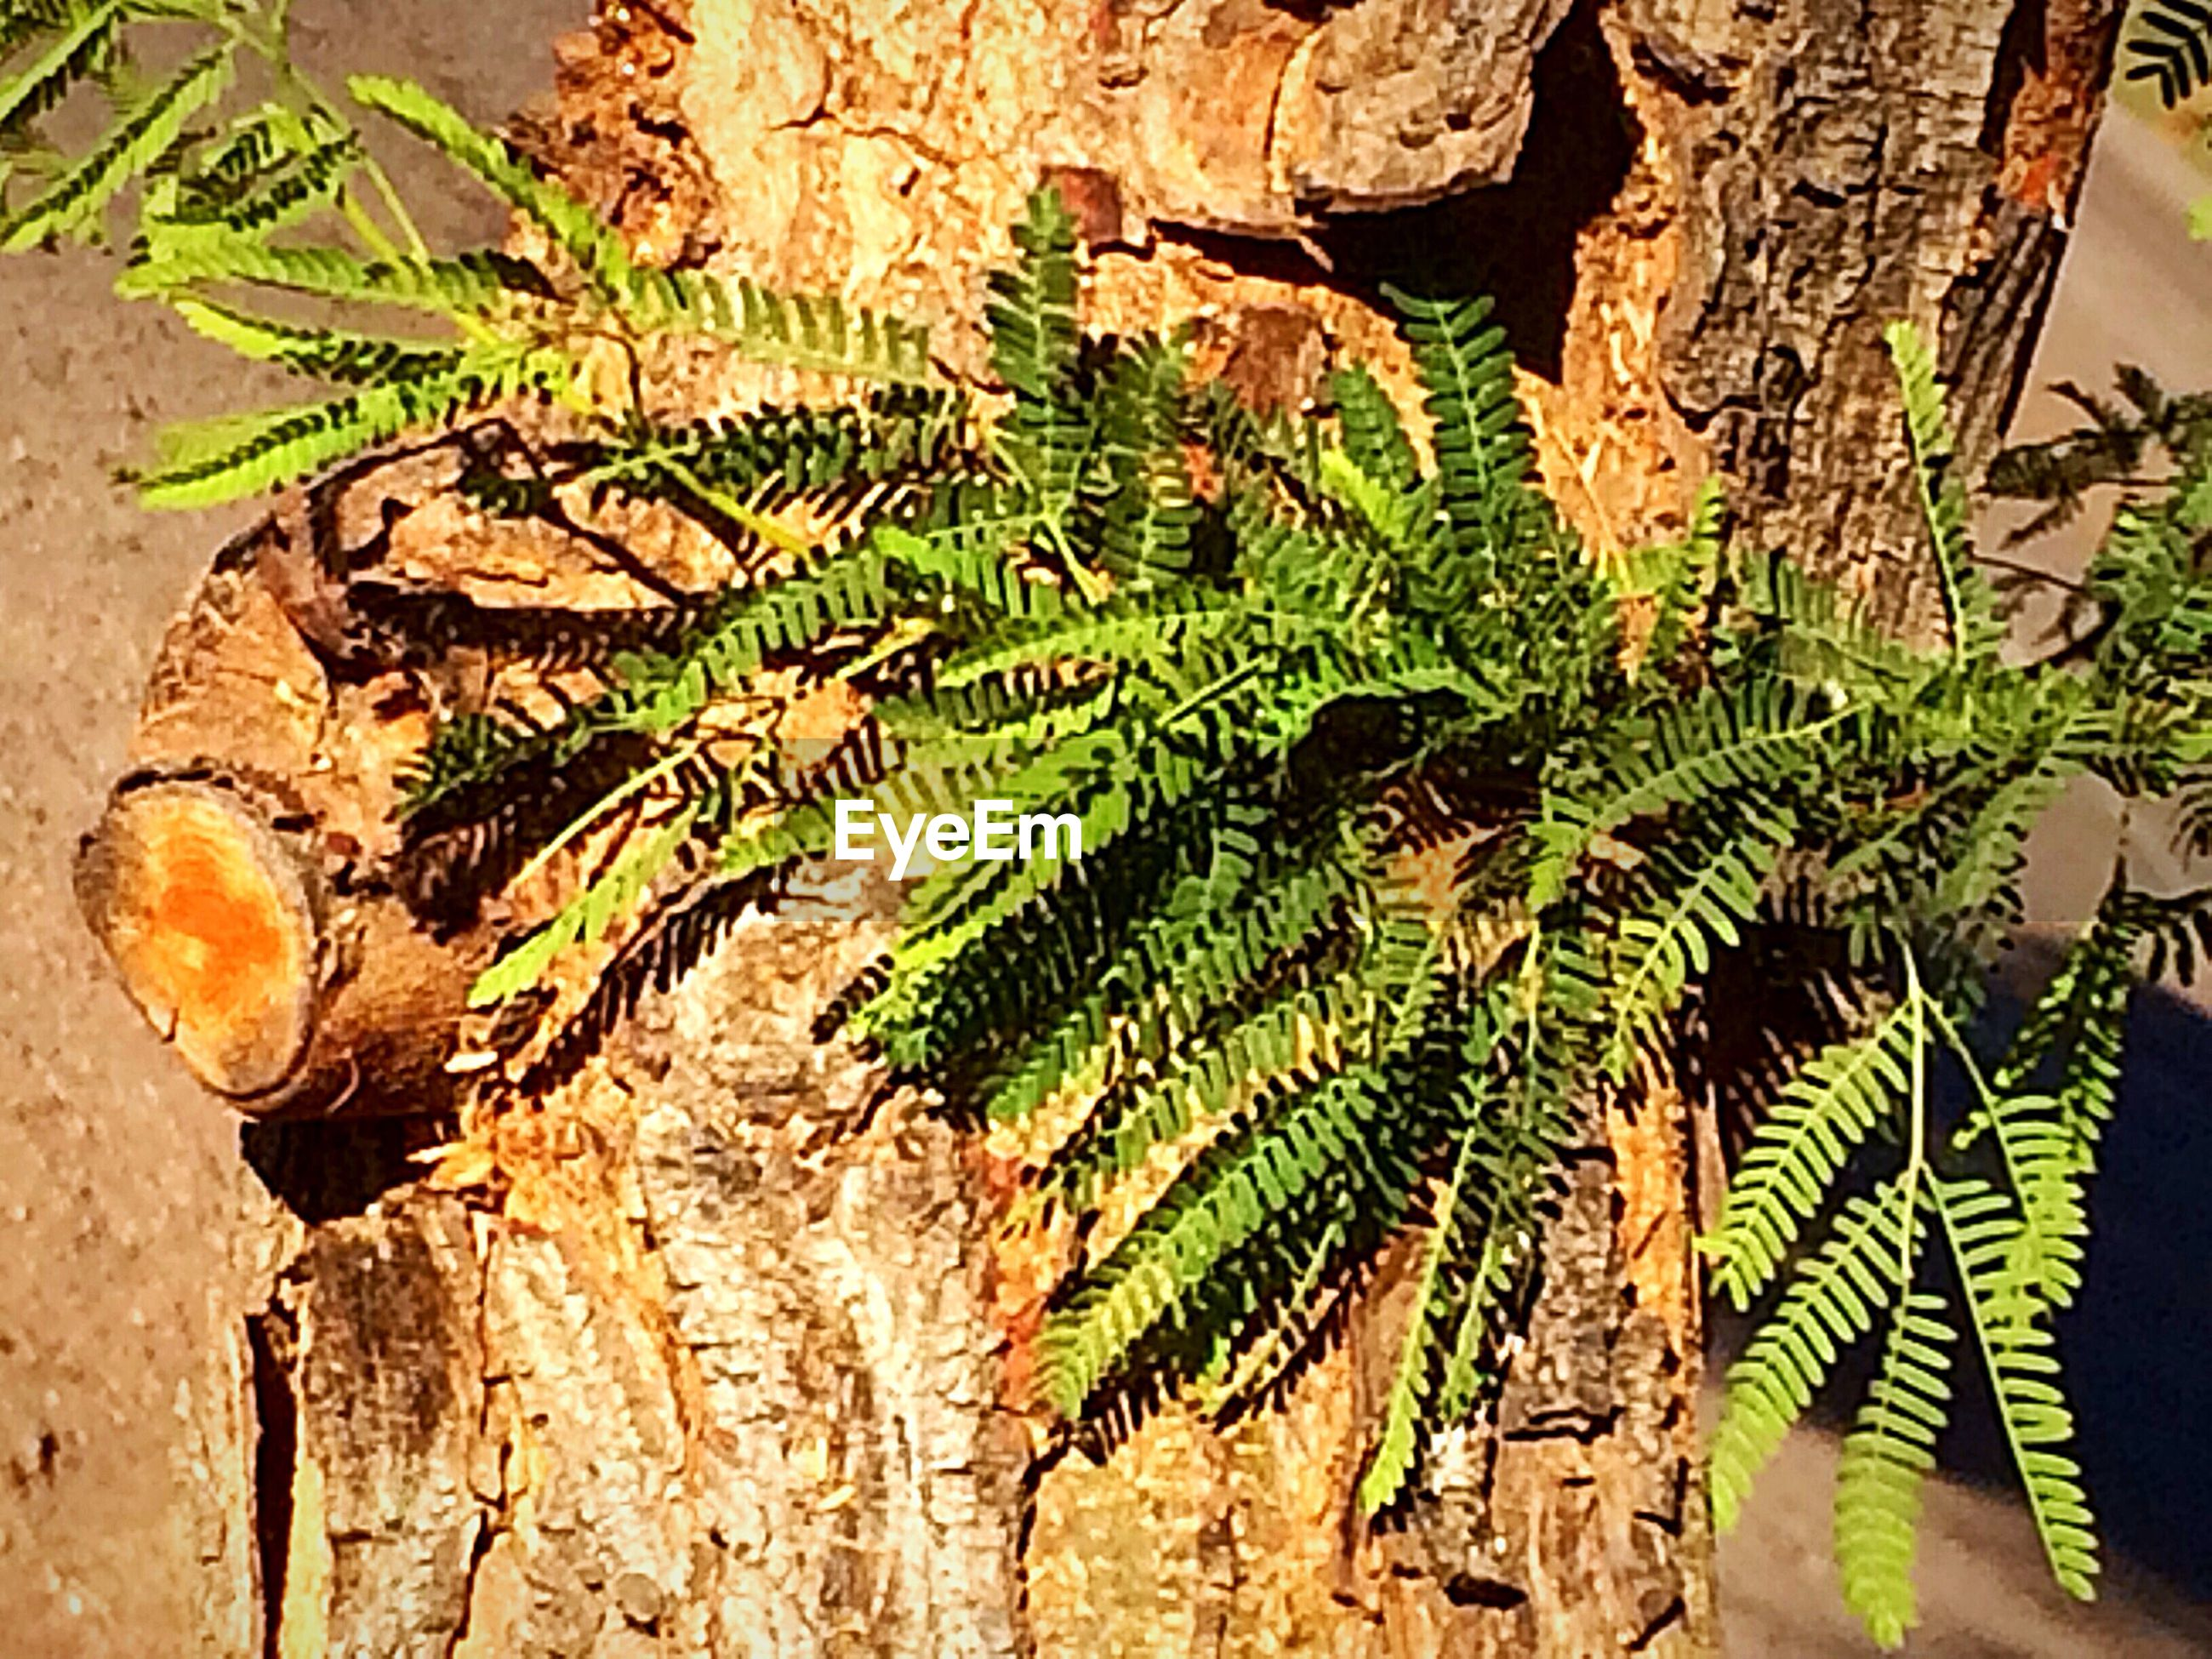 plant, growth, tree, leaf, nature, plant part, no people, green color, close-up, day, tree trunk, trunk, sunlight, outdoors, animal wildlife, animal, animals in the wild, beauty in nature, fern, wood - material